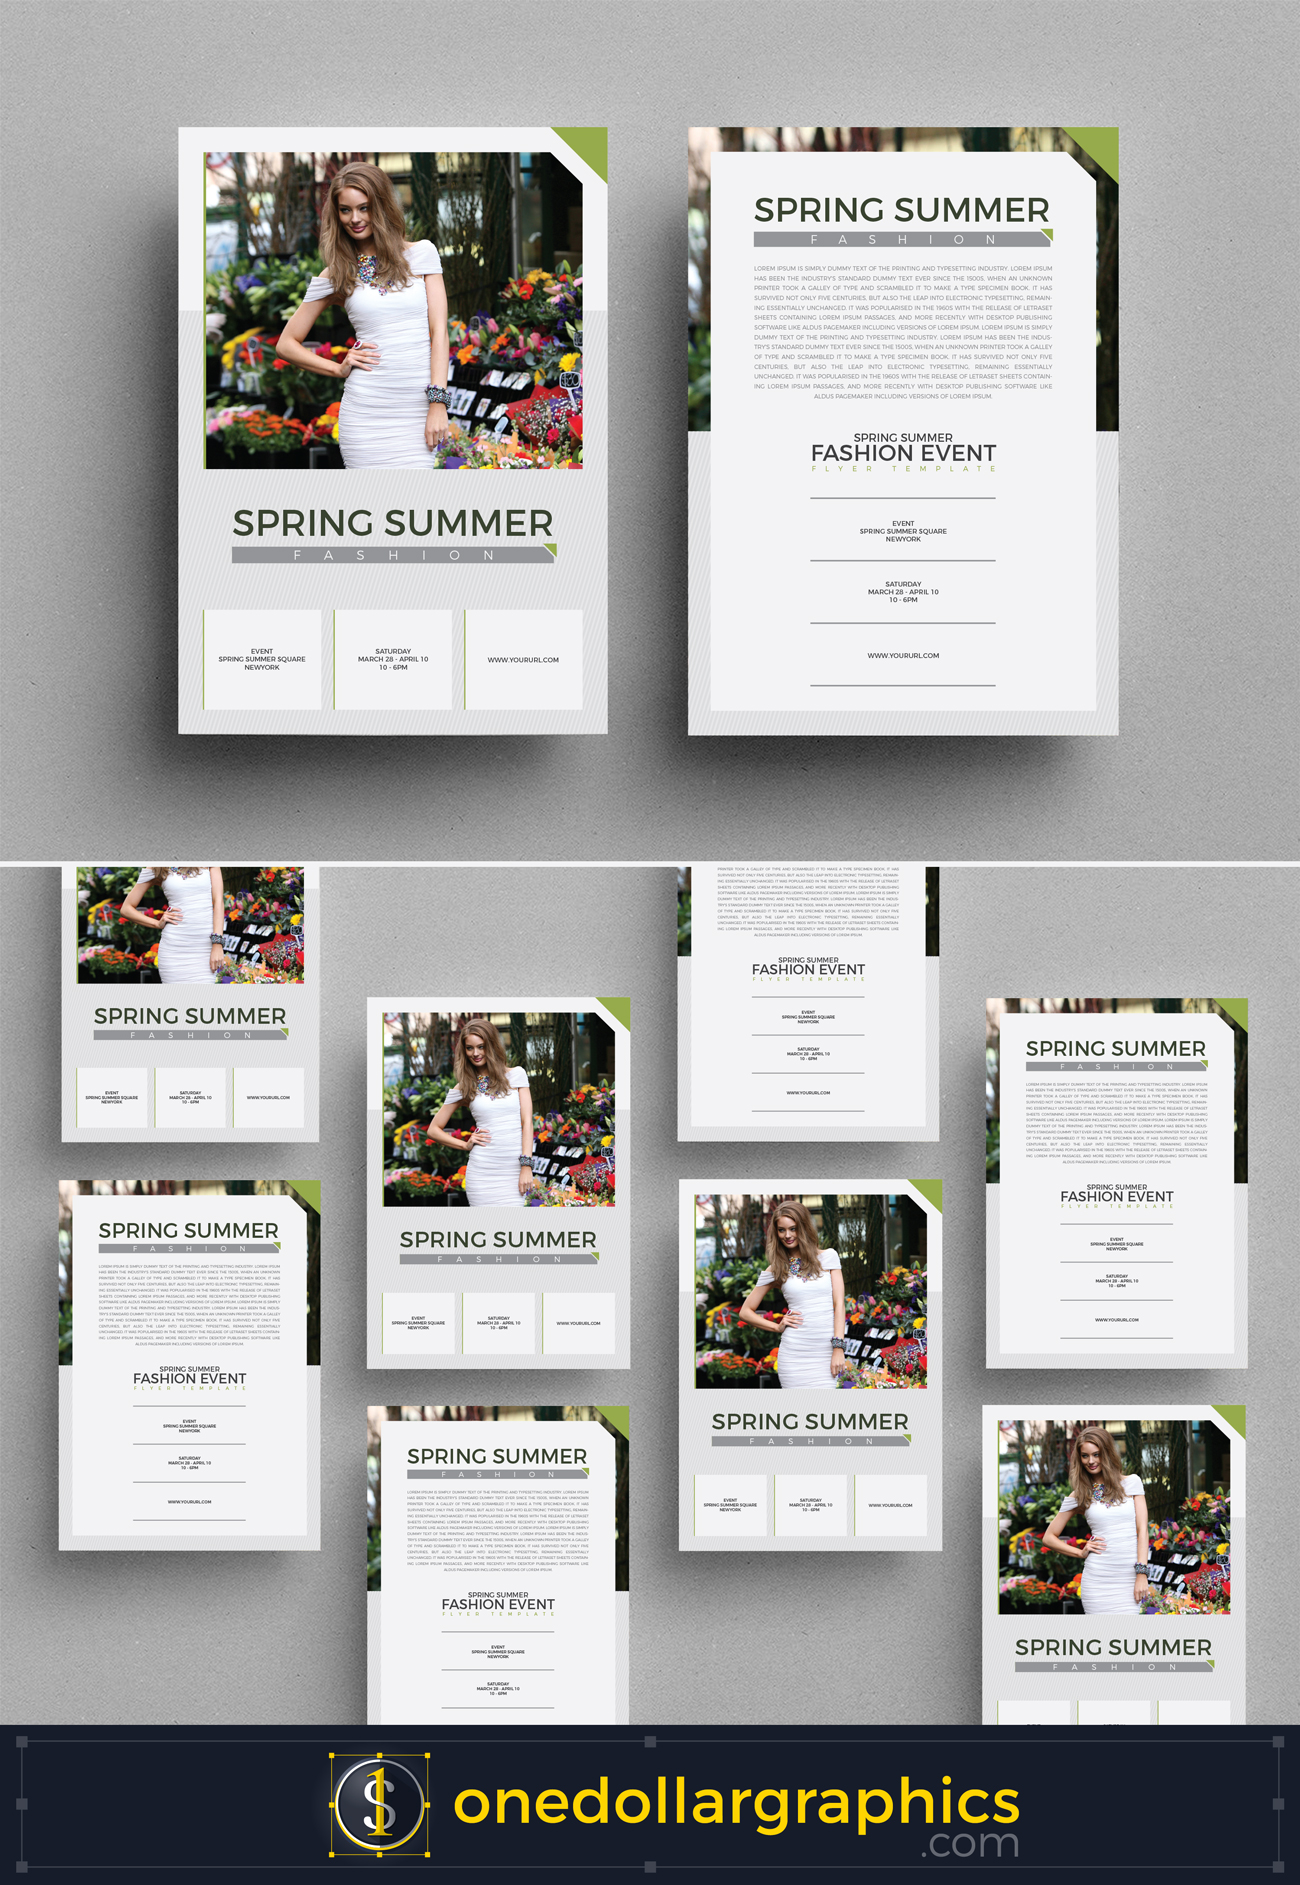 Spring-Summer-Fashion-Event-Flyer-Template